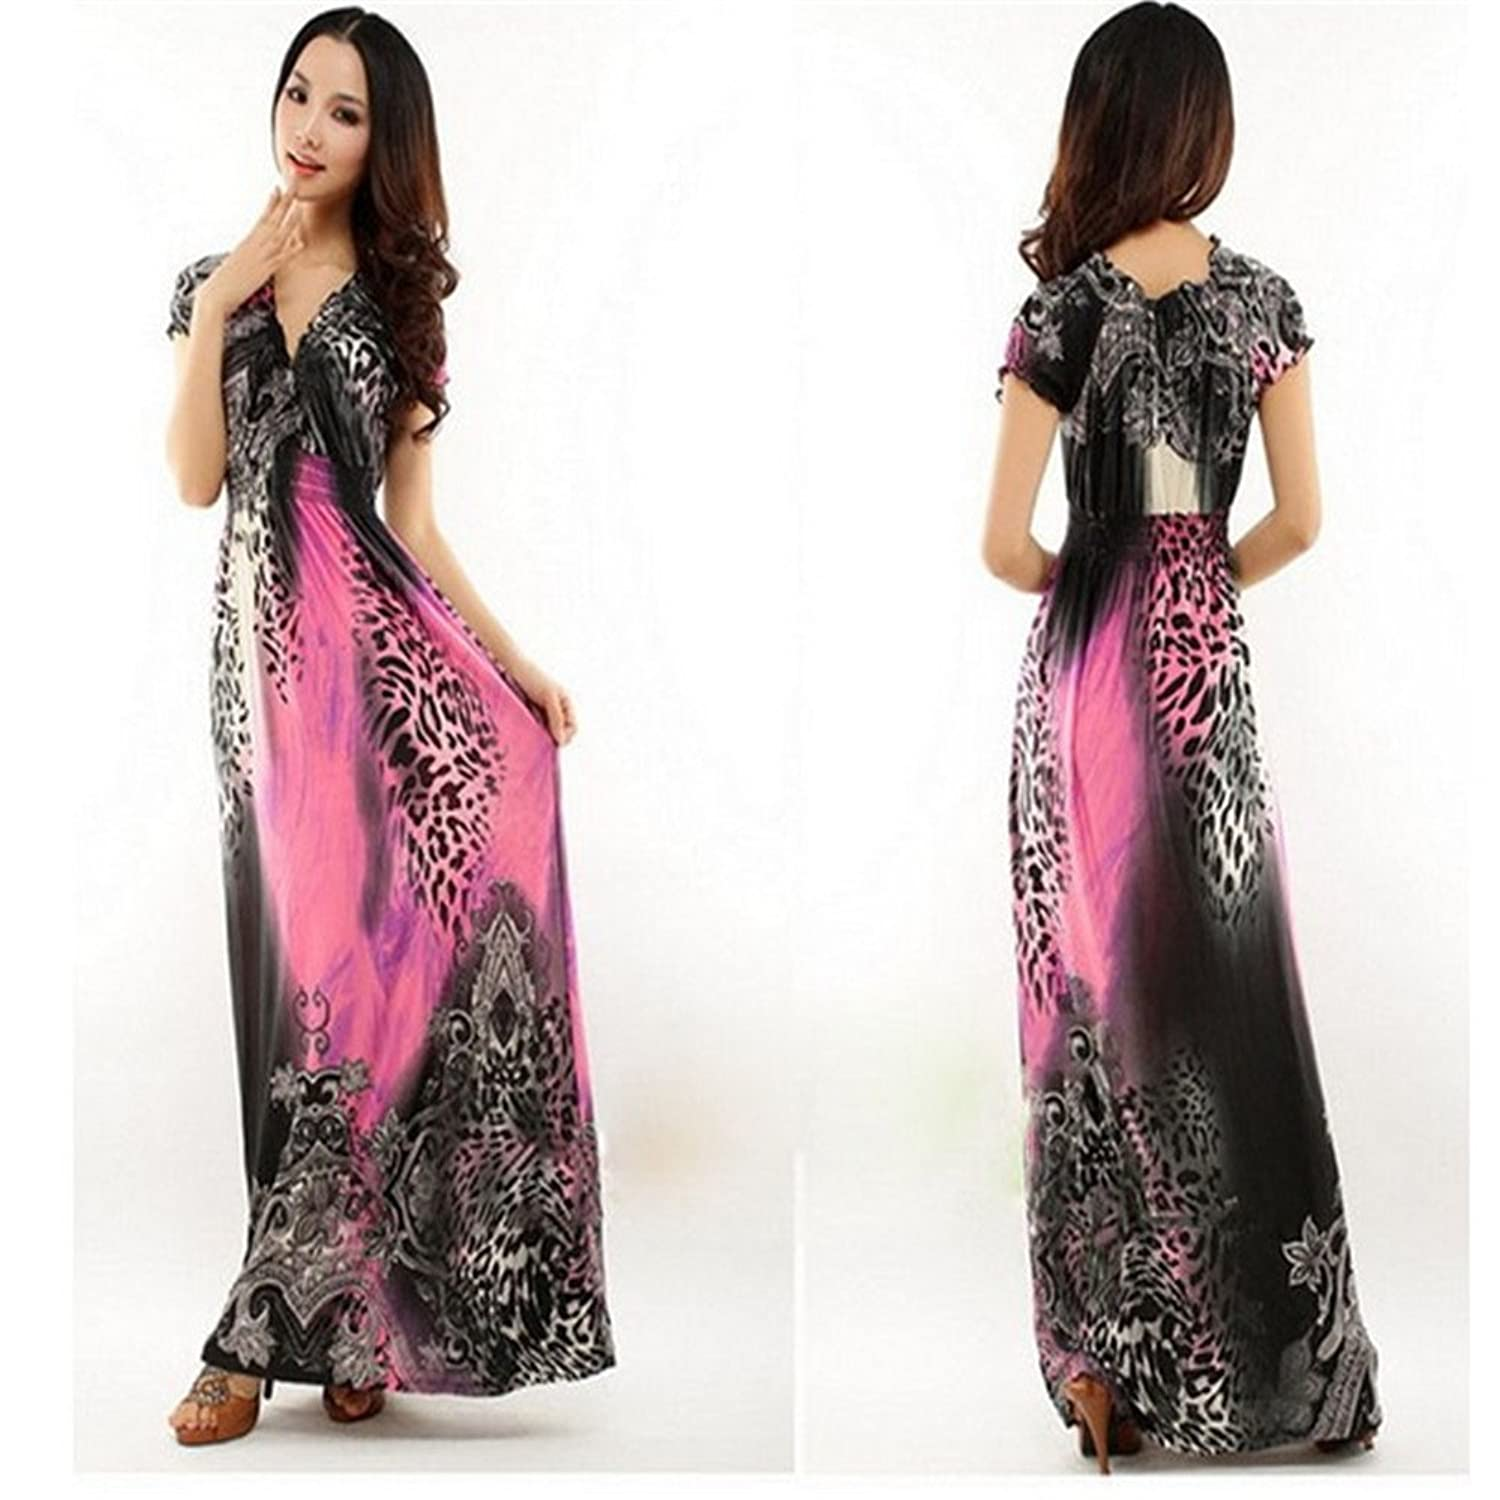 C&L New Girls Summer Beach Dresses Leopard Long Maxi Dress at Amazon Womens Clothing store: